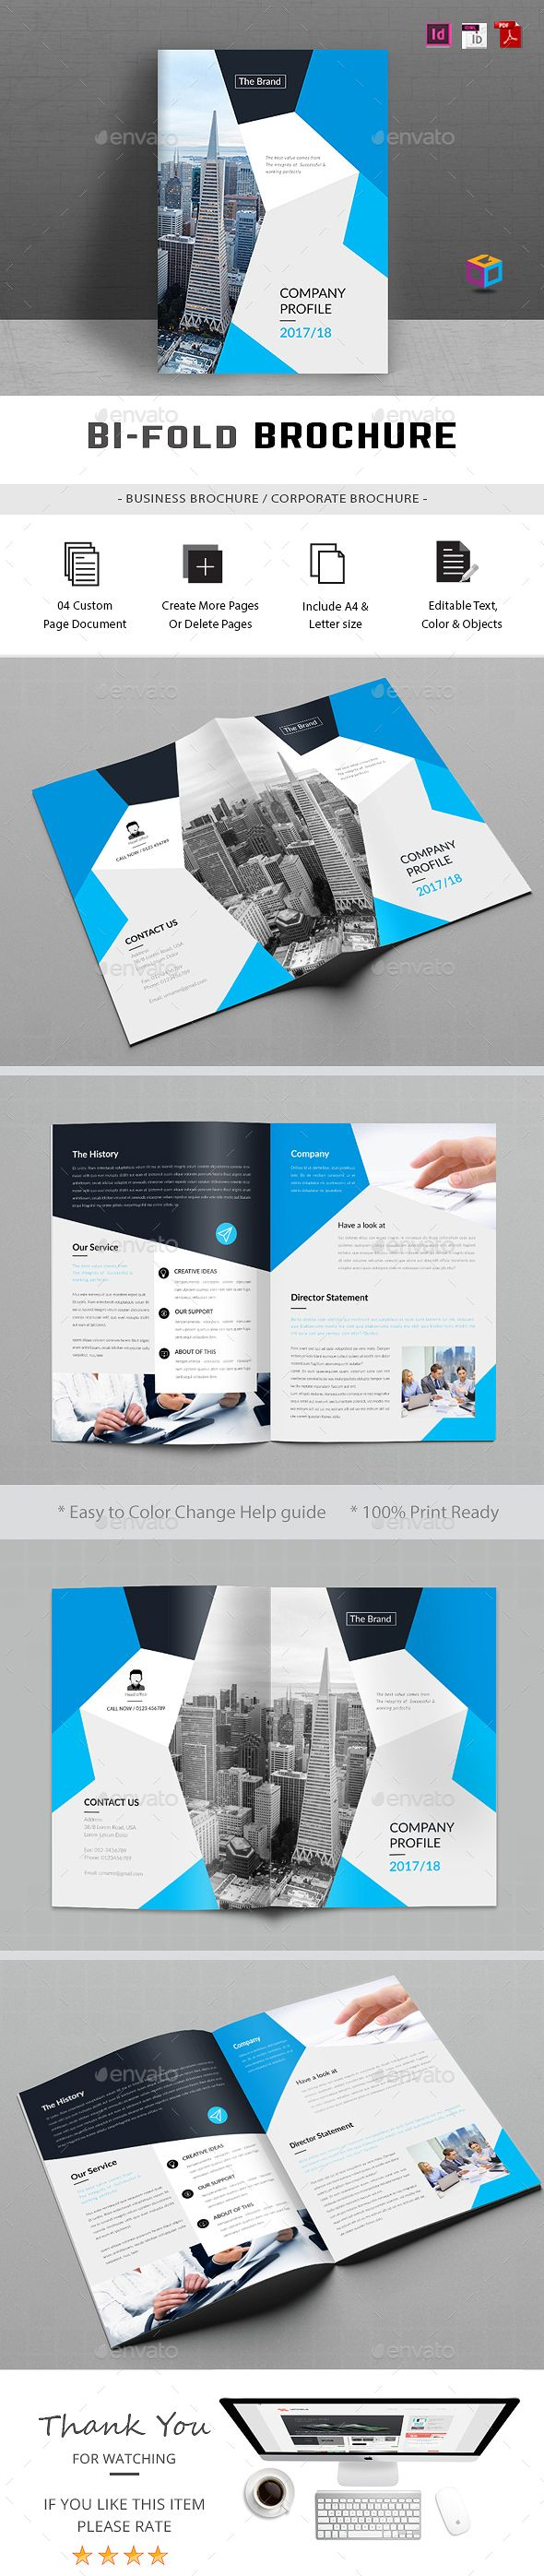 buy corporate bi fold brochure by gdoback on graphicriver file information easy to edit 4 pages mm inches bleeds 5 mm us letter inches ble